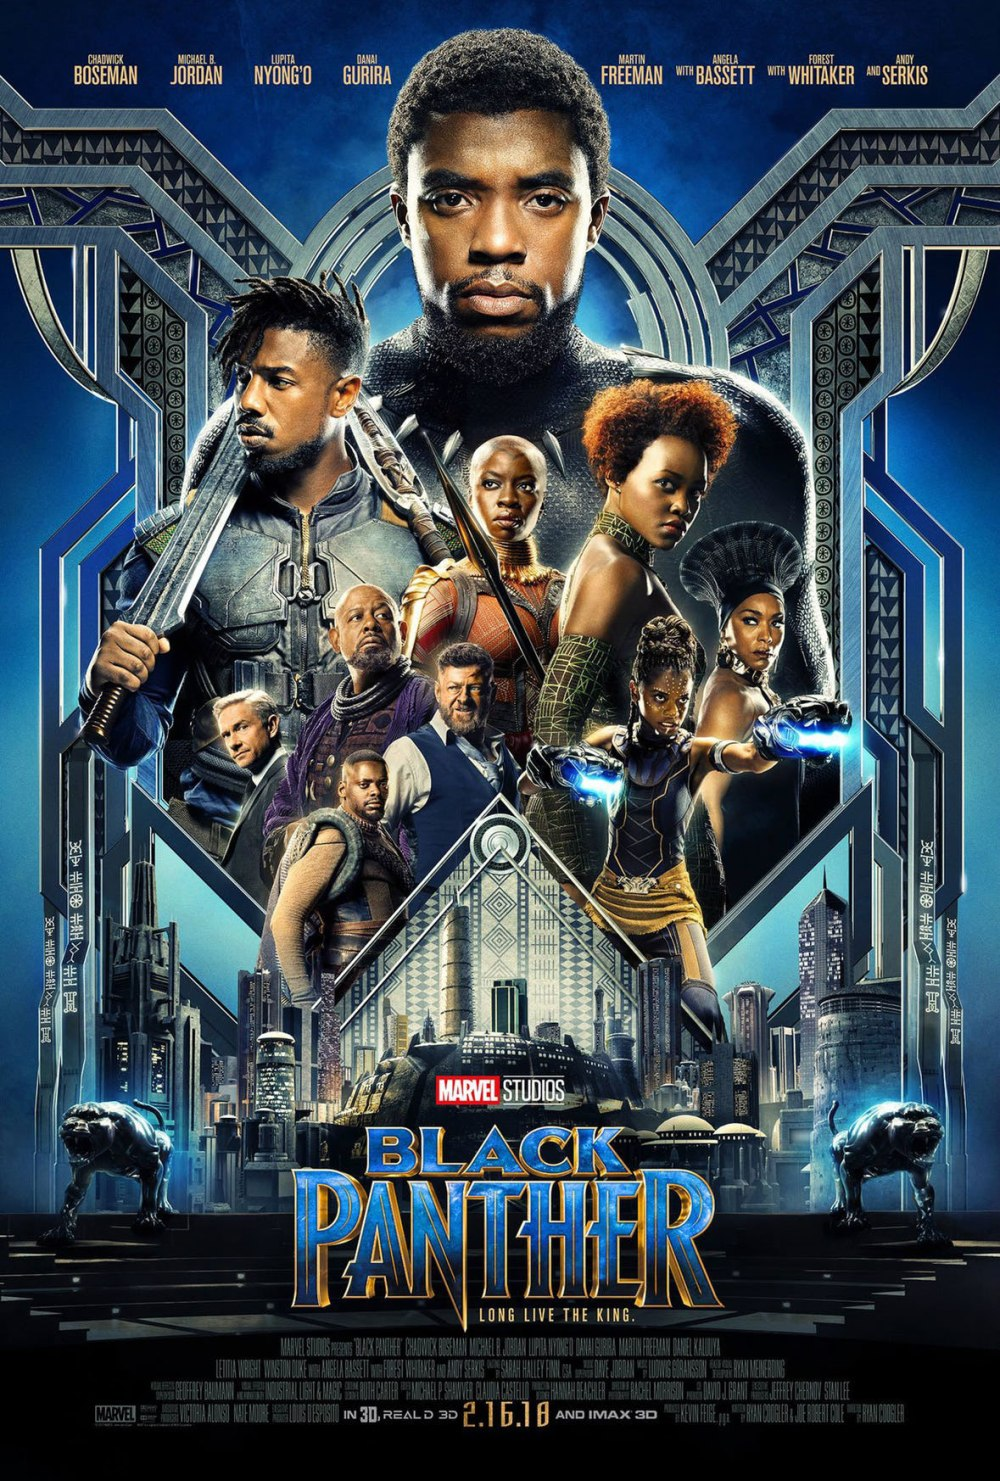 All Things Valentines List [HYPE Love] Black Panther poster main xl